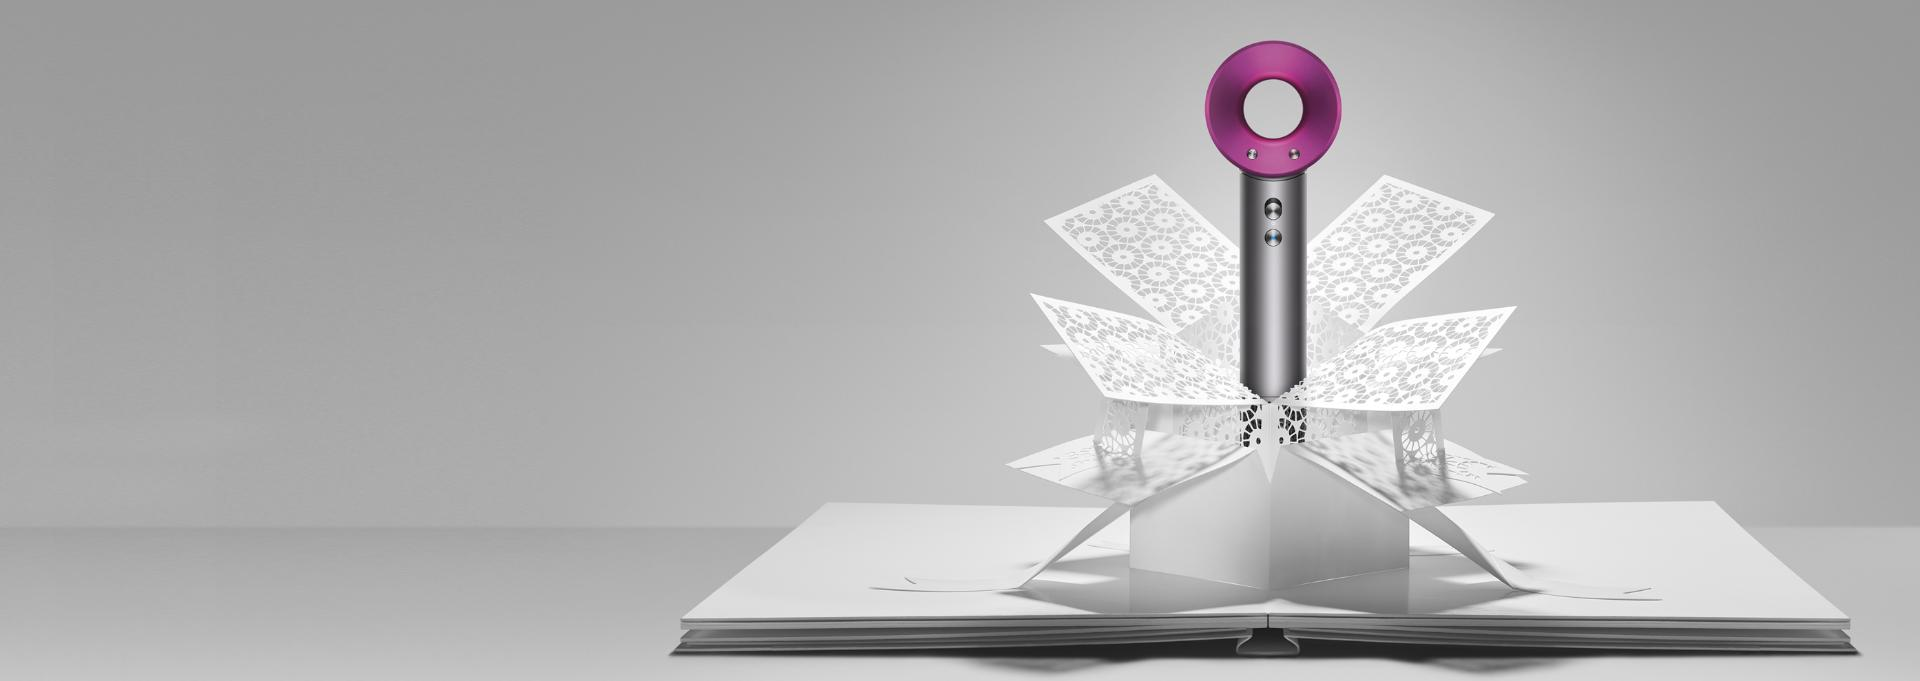 Dyson Supersonic™ hair dryer emerging from paper art